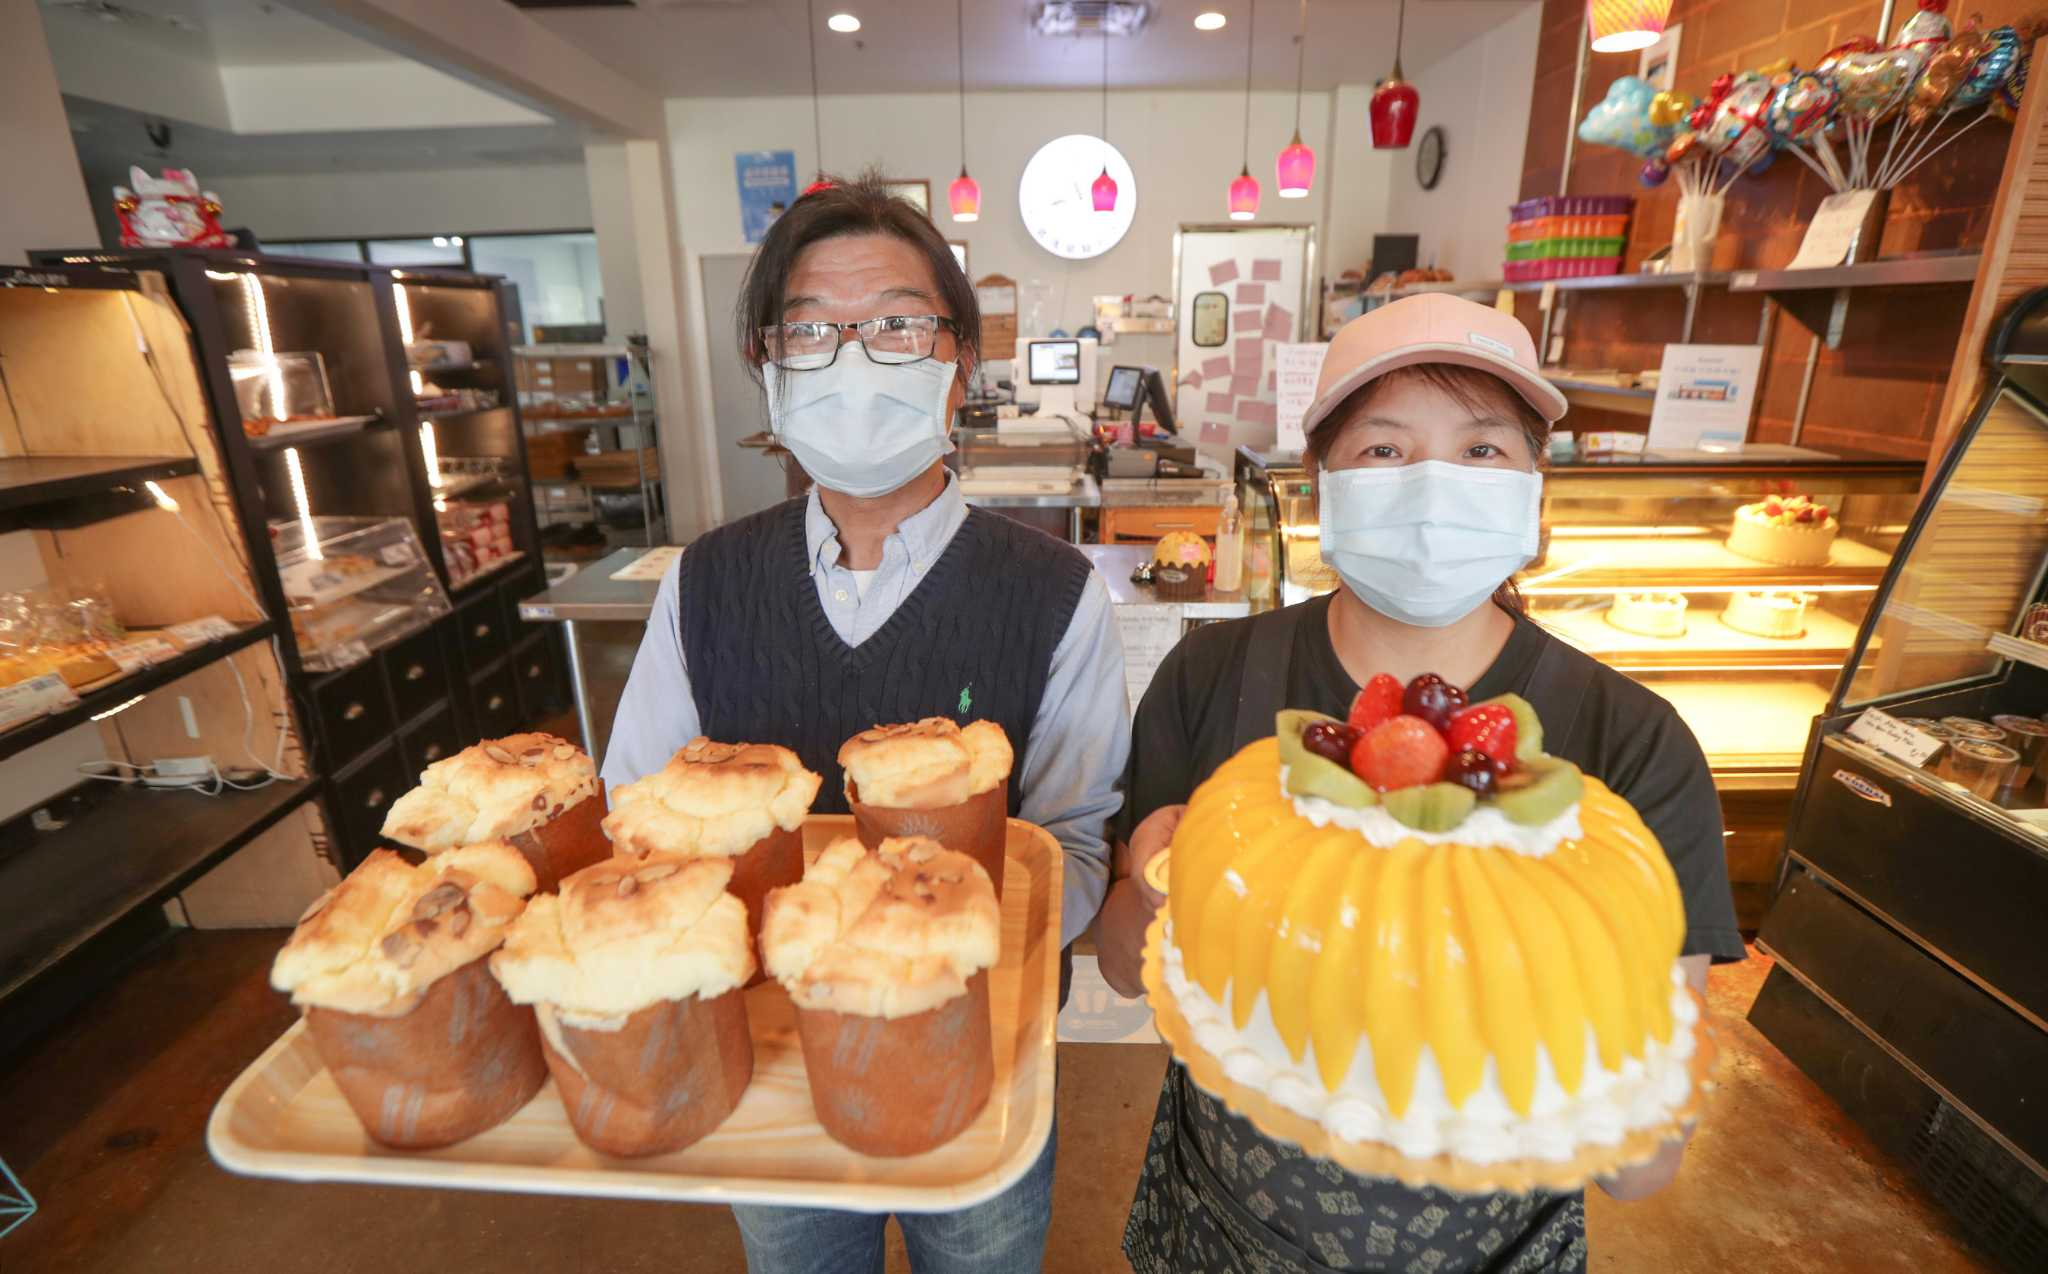 www.houstonchronicle.com: Opinion: For Lunar New Year, Houston's Asian bakeries offer sweet adaptations to constant challenges